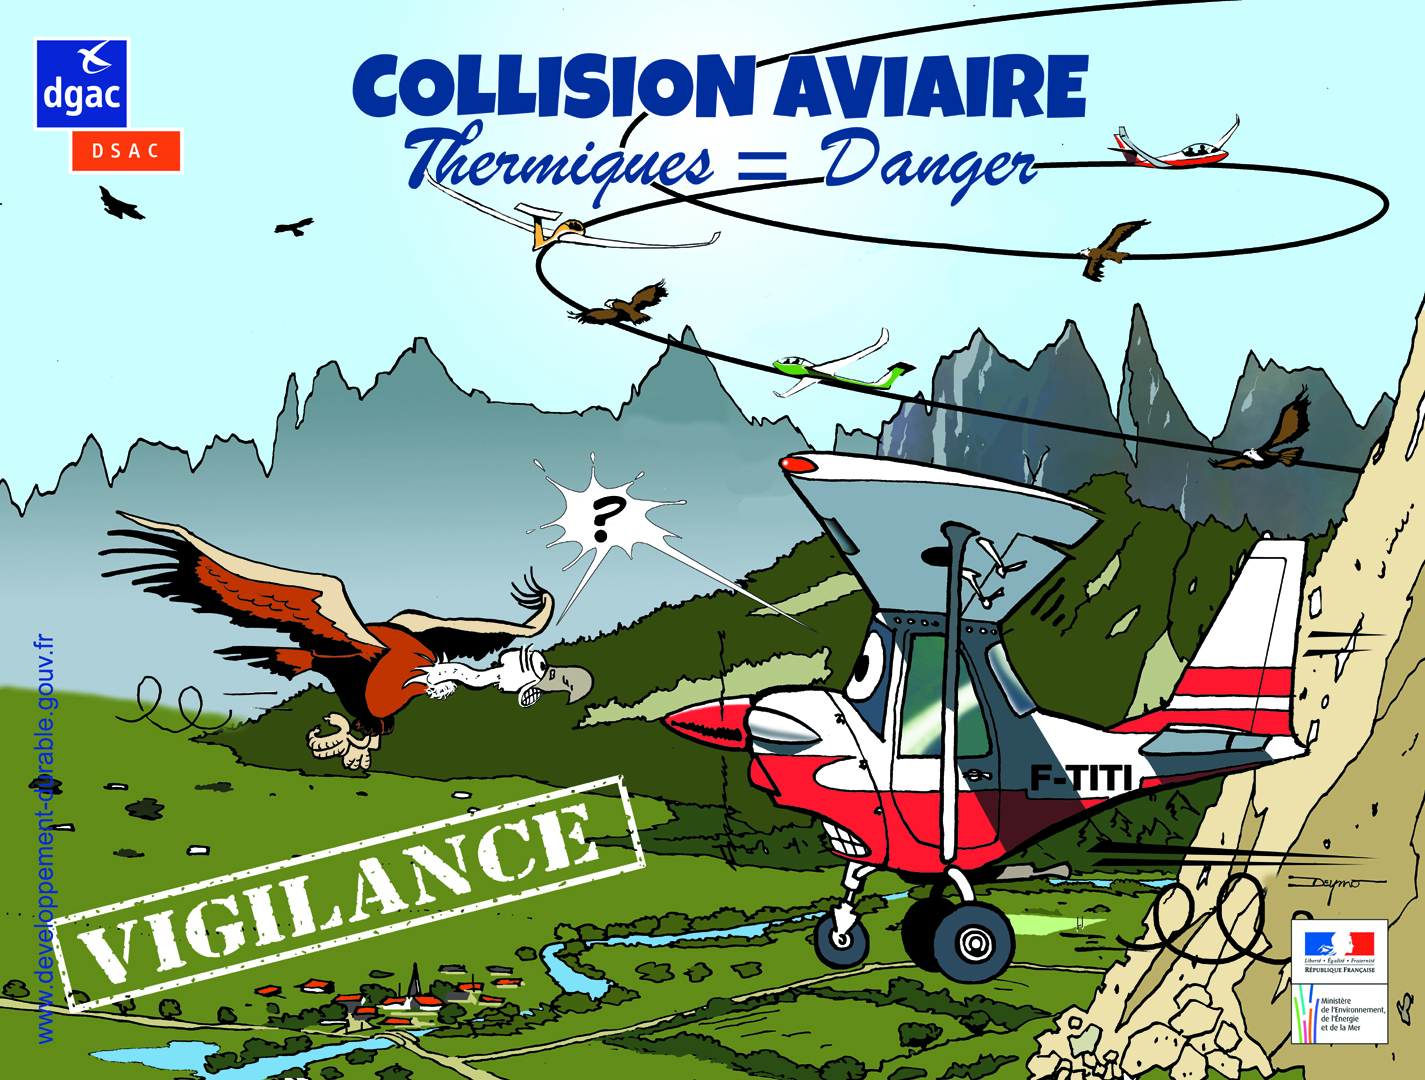 Collisions aviaire - Thermiques